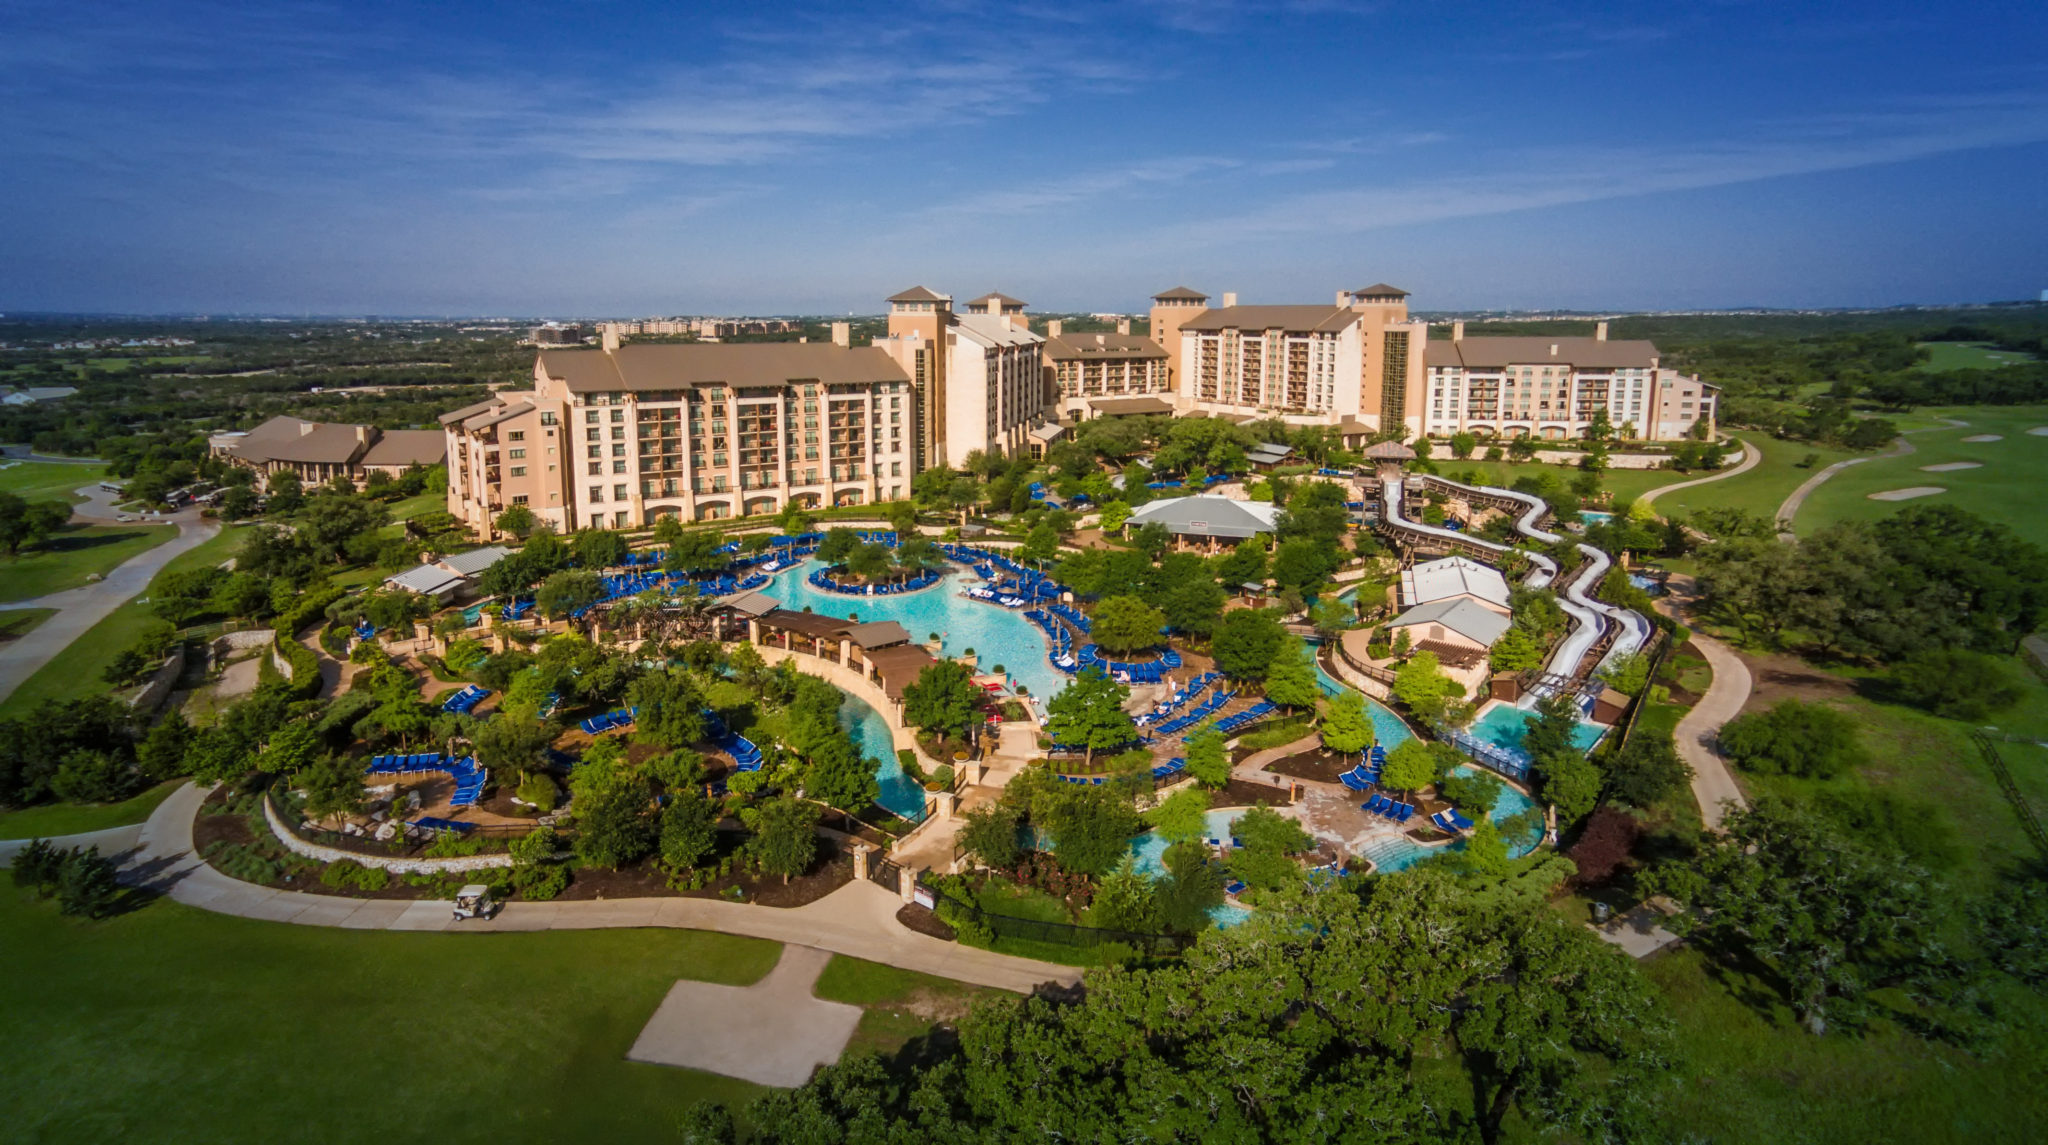 Jw marriott hill country resort spa extends water park for Texas spas and resorts